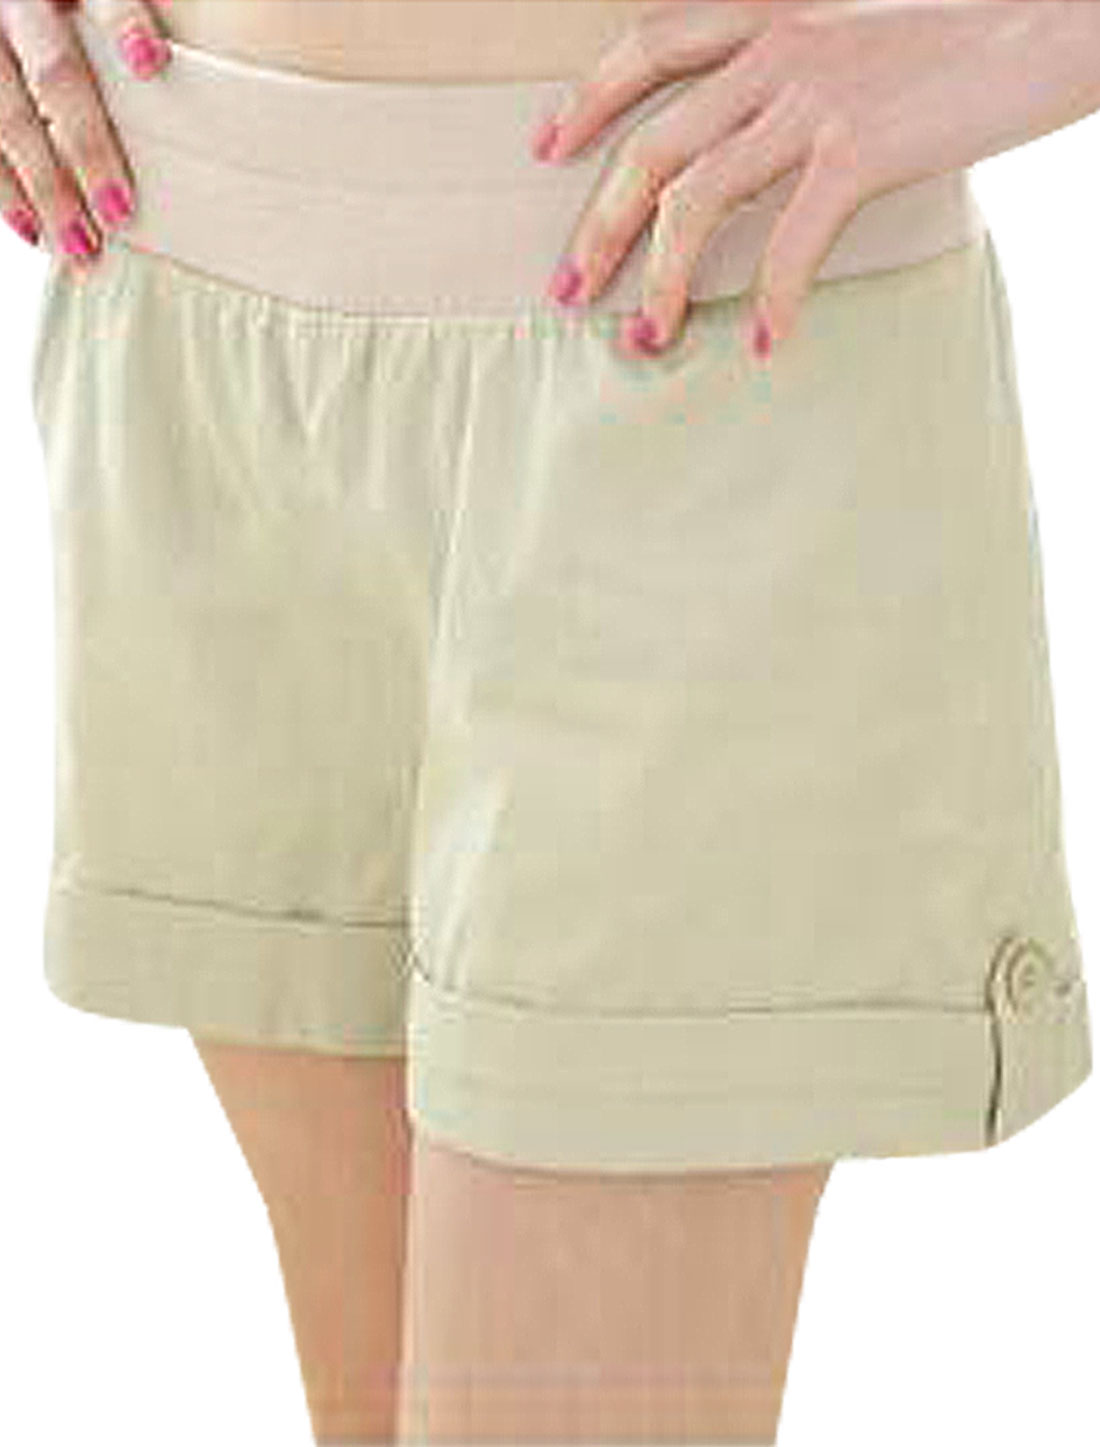 Women Beige Elastic Waist Fake Pocket Back Shorts Khaki Pants XS